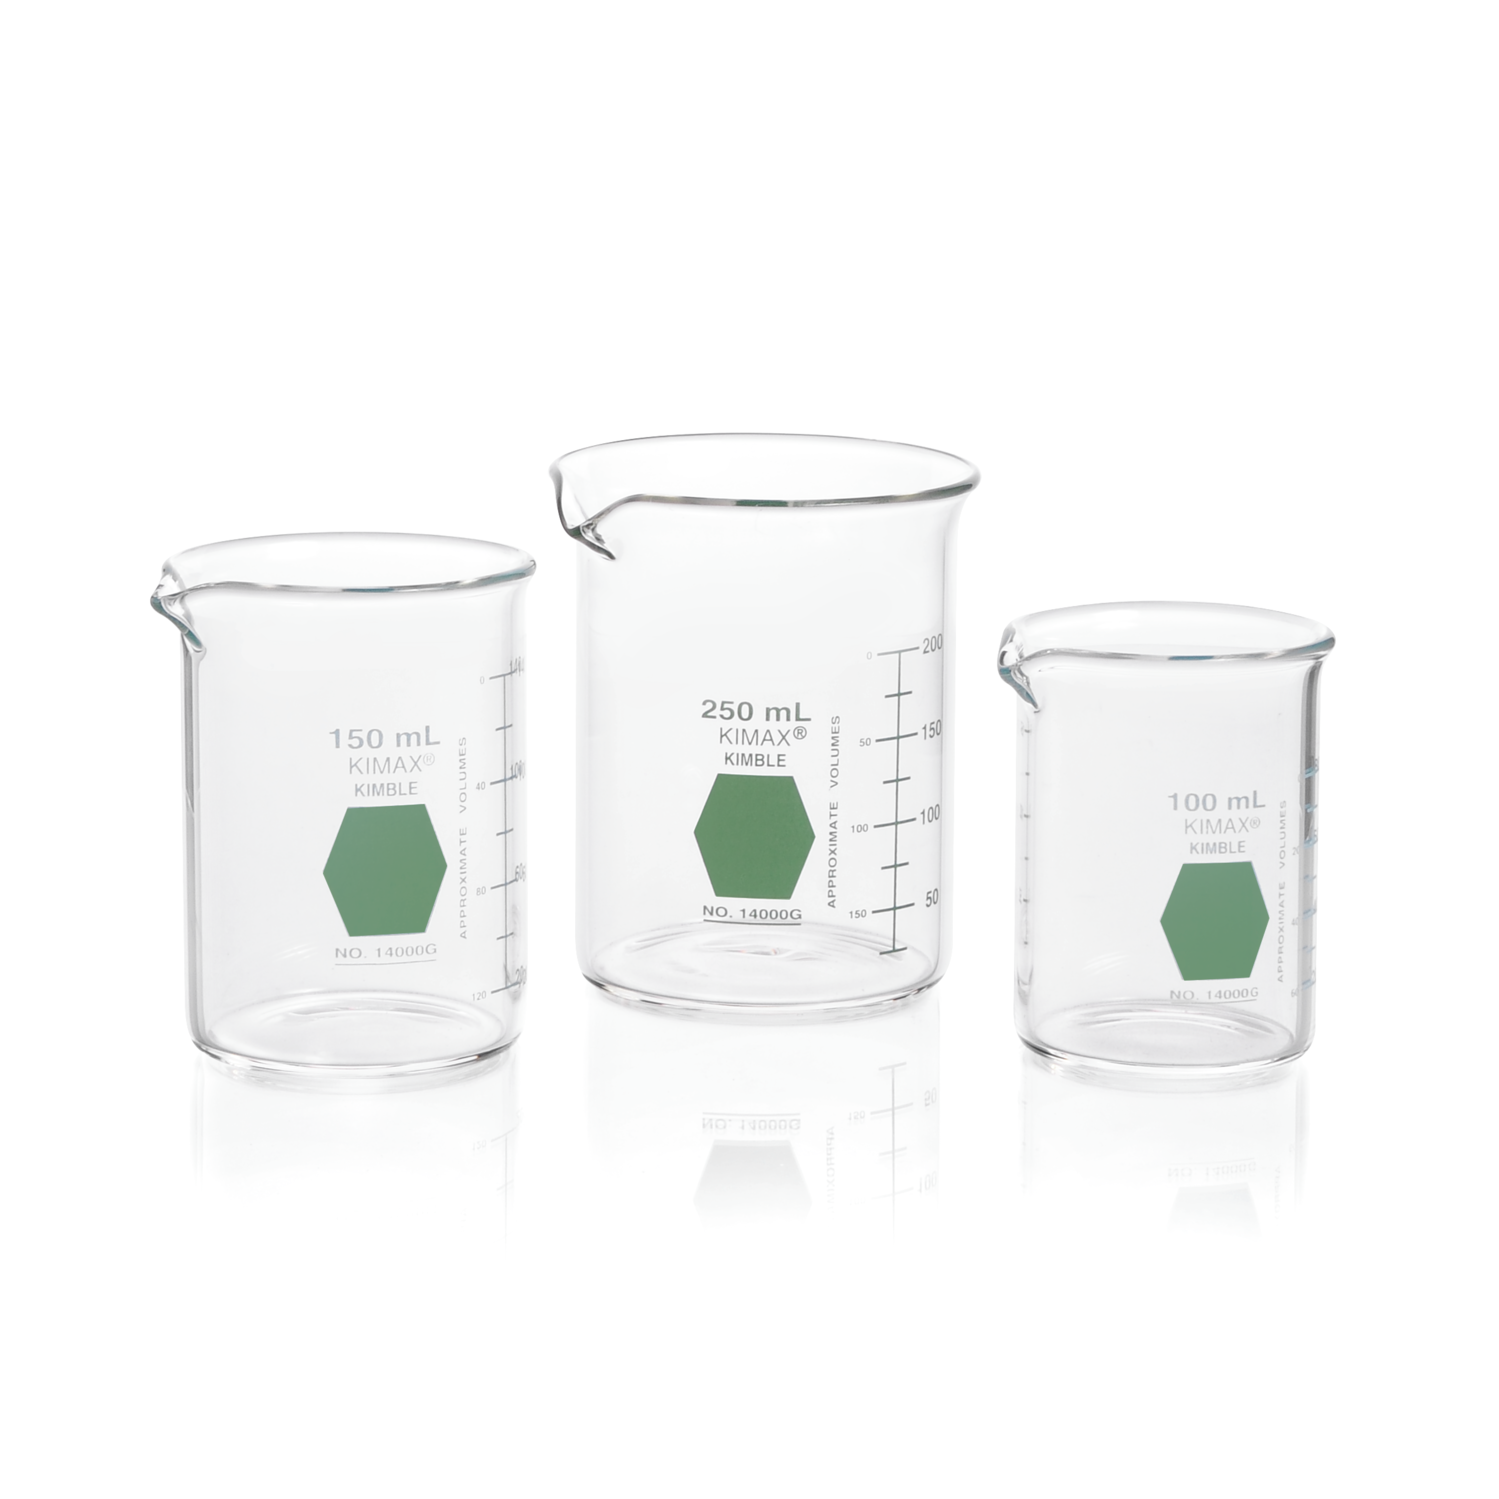 KIMBLE® KIMAX® Colorware Beaker, low form, with spout, Green, 600 mL